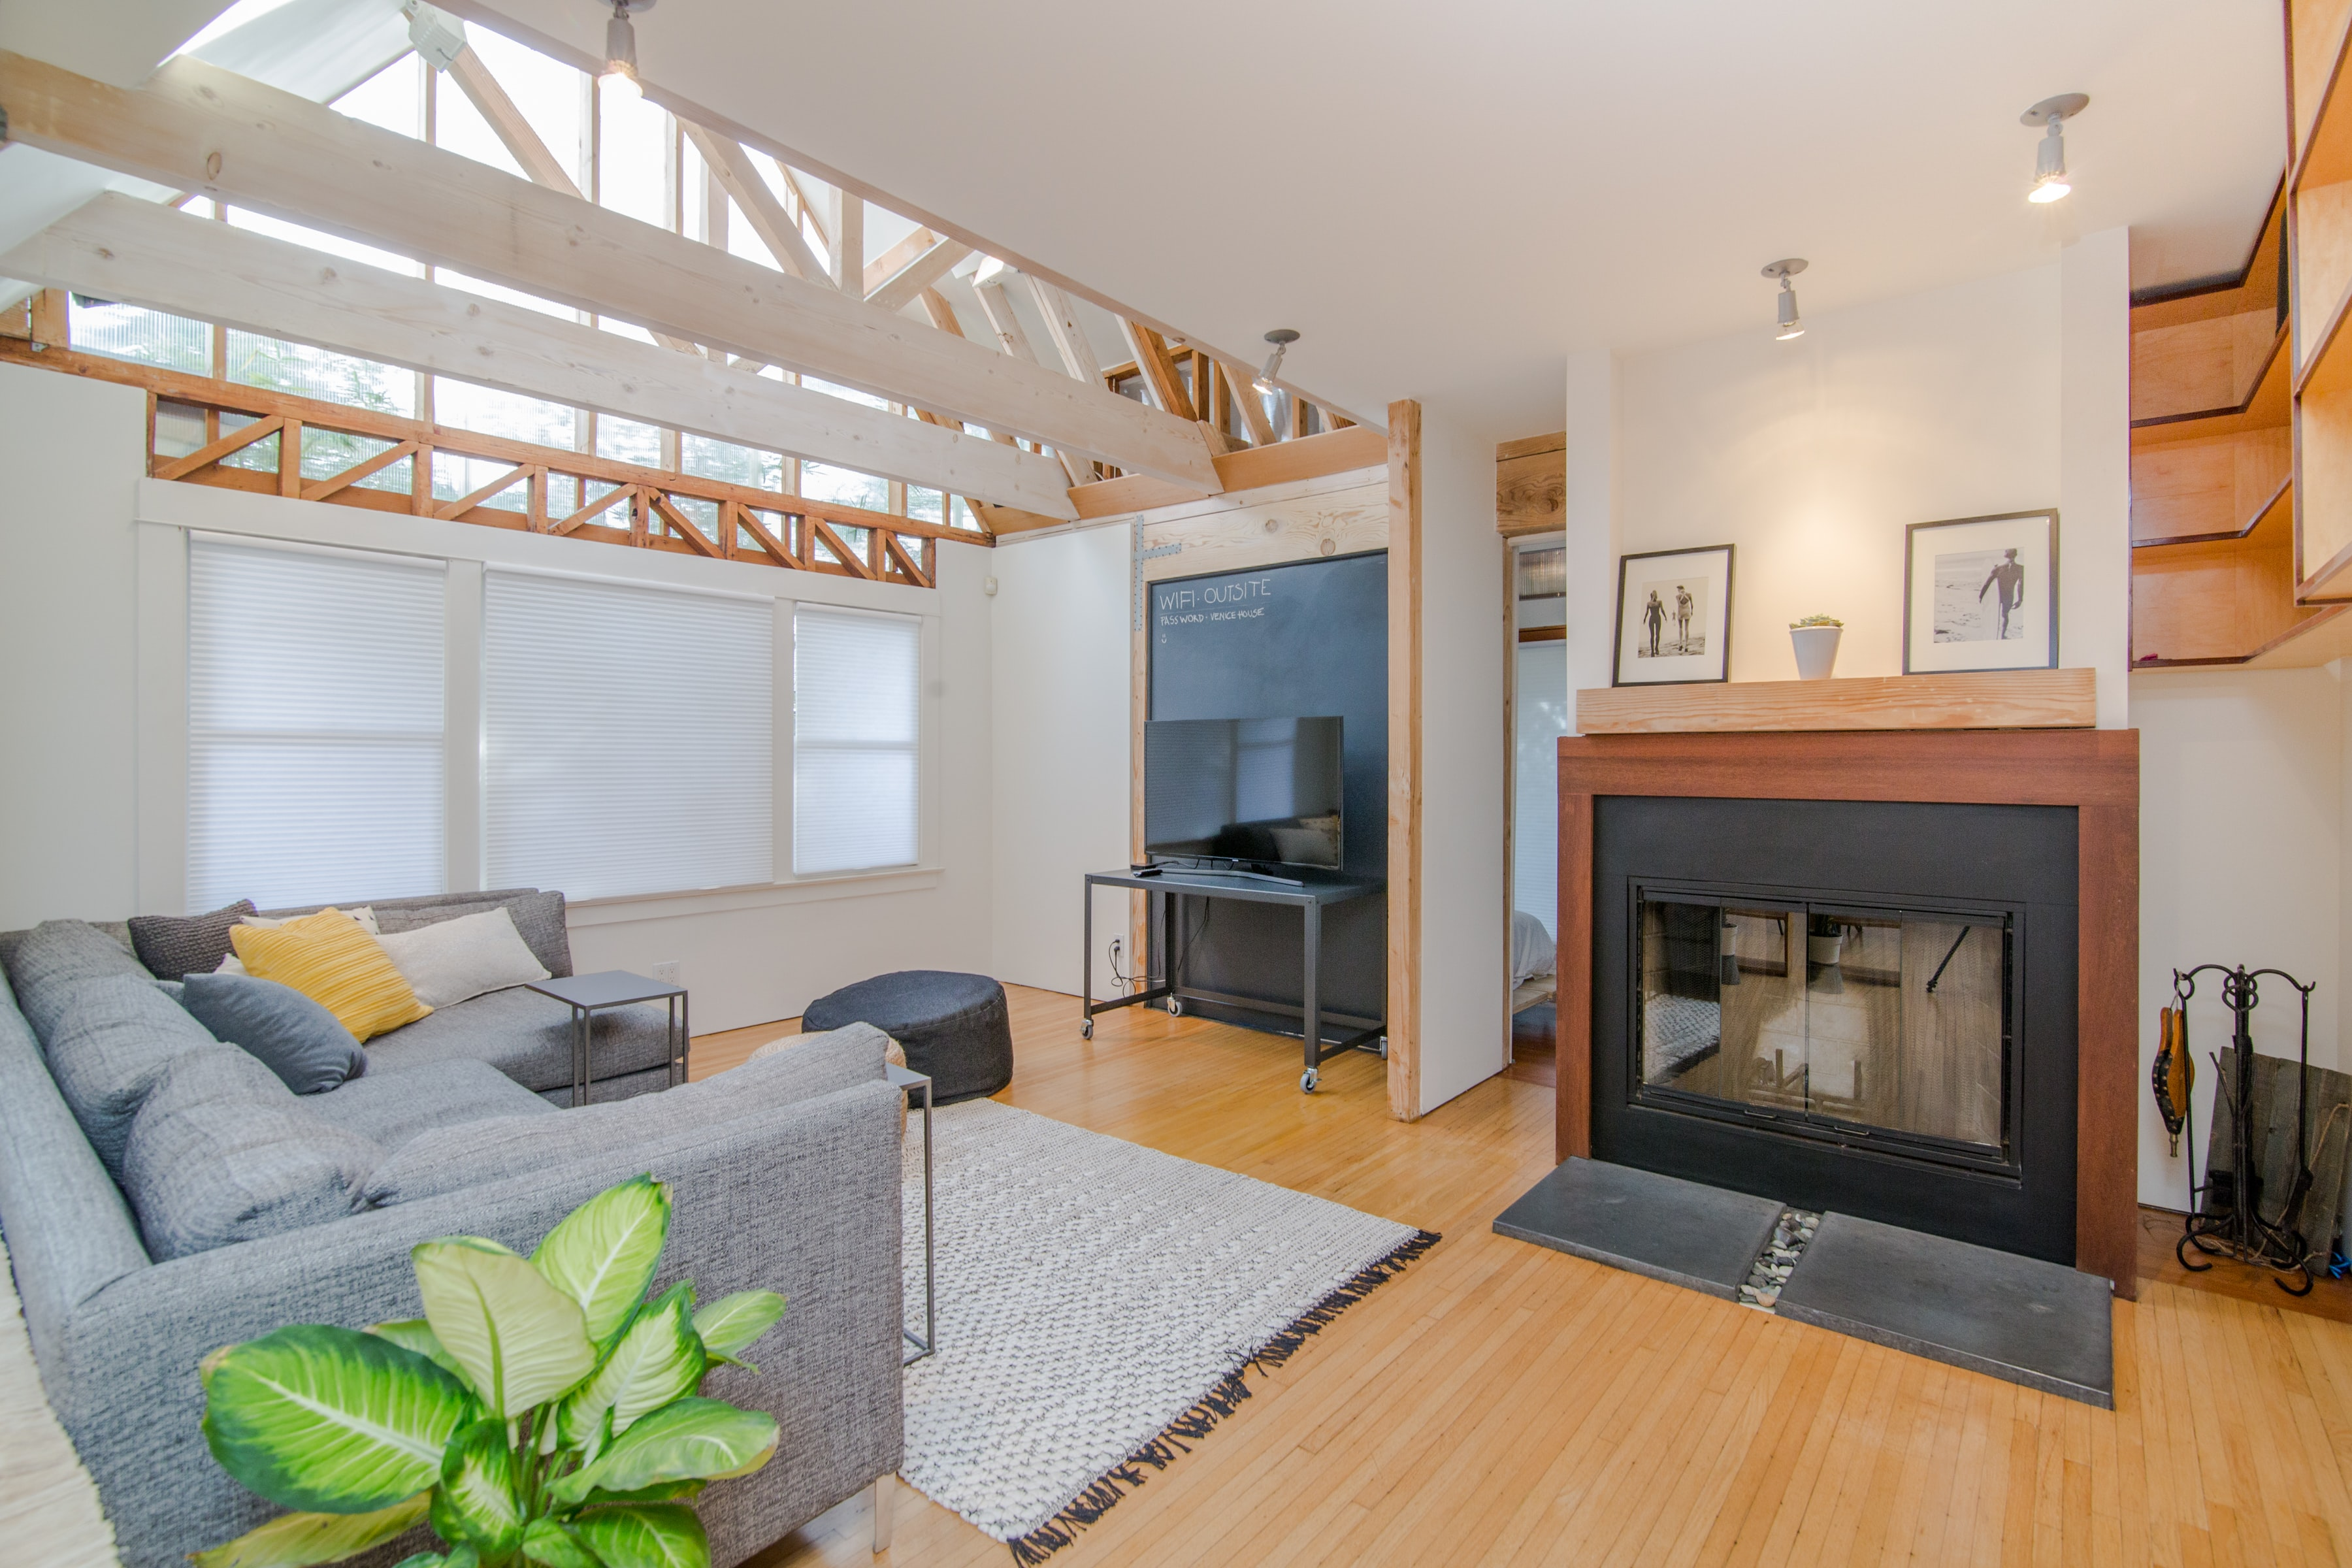 Bright living room with beams on the ceiling, a rug, plant, and fireplace